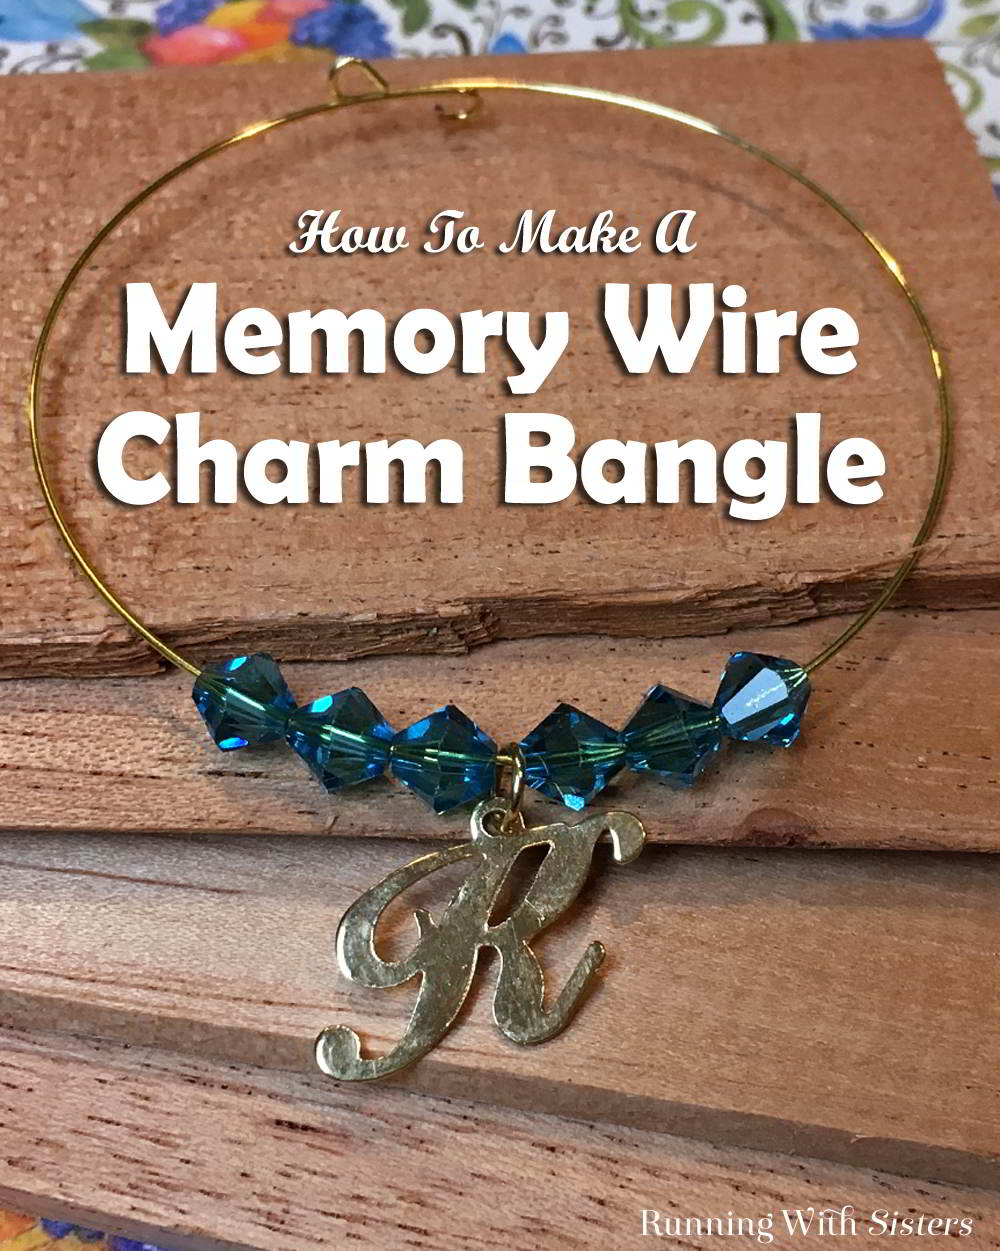 Charm Bangles are all the rage. They are easy to make and easy to wear! You can make them in just four simple steps. We'll show you how.